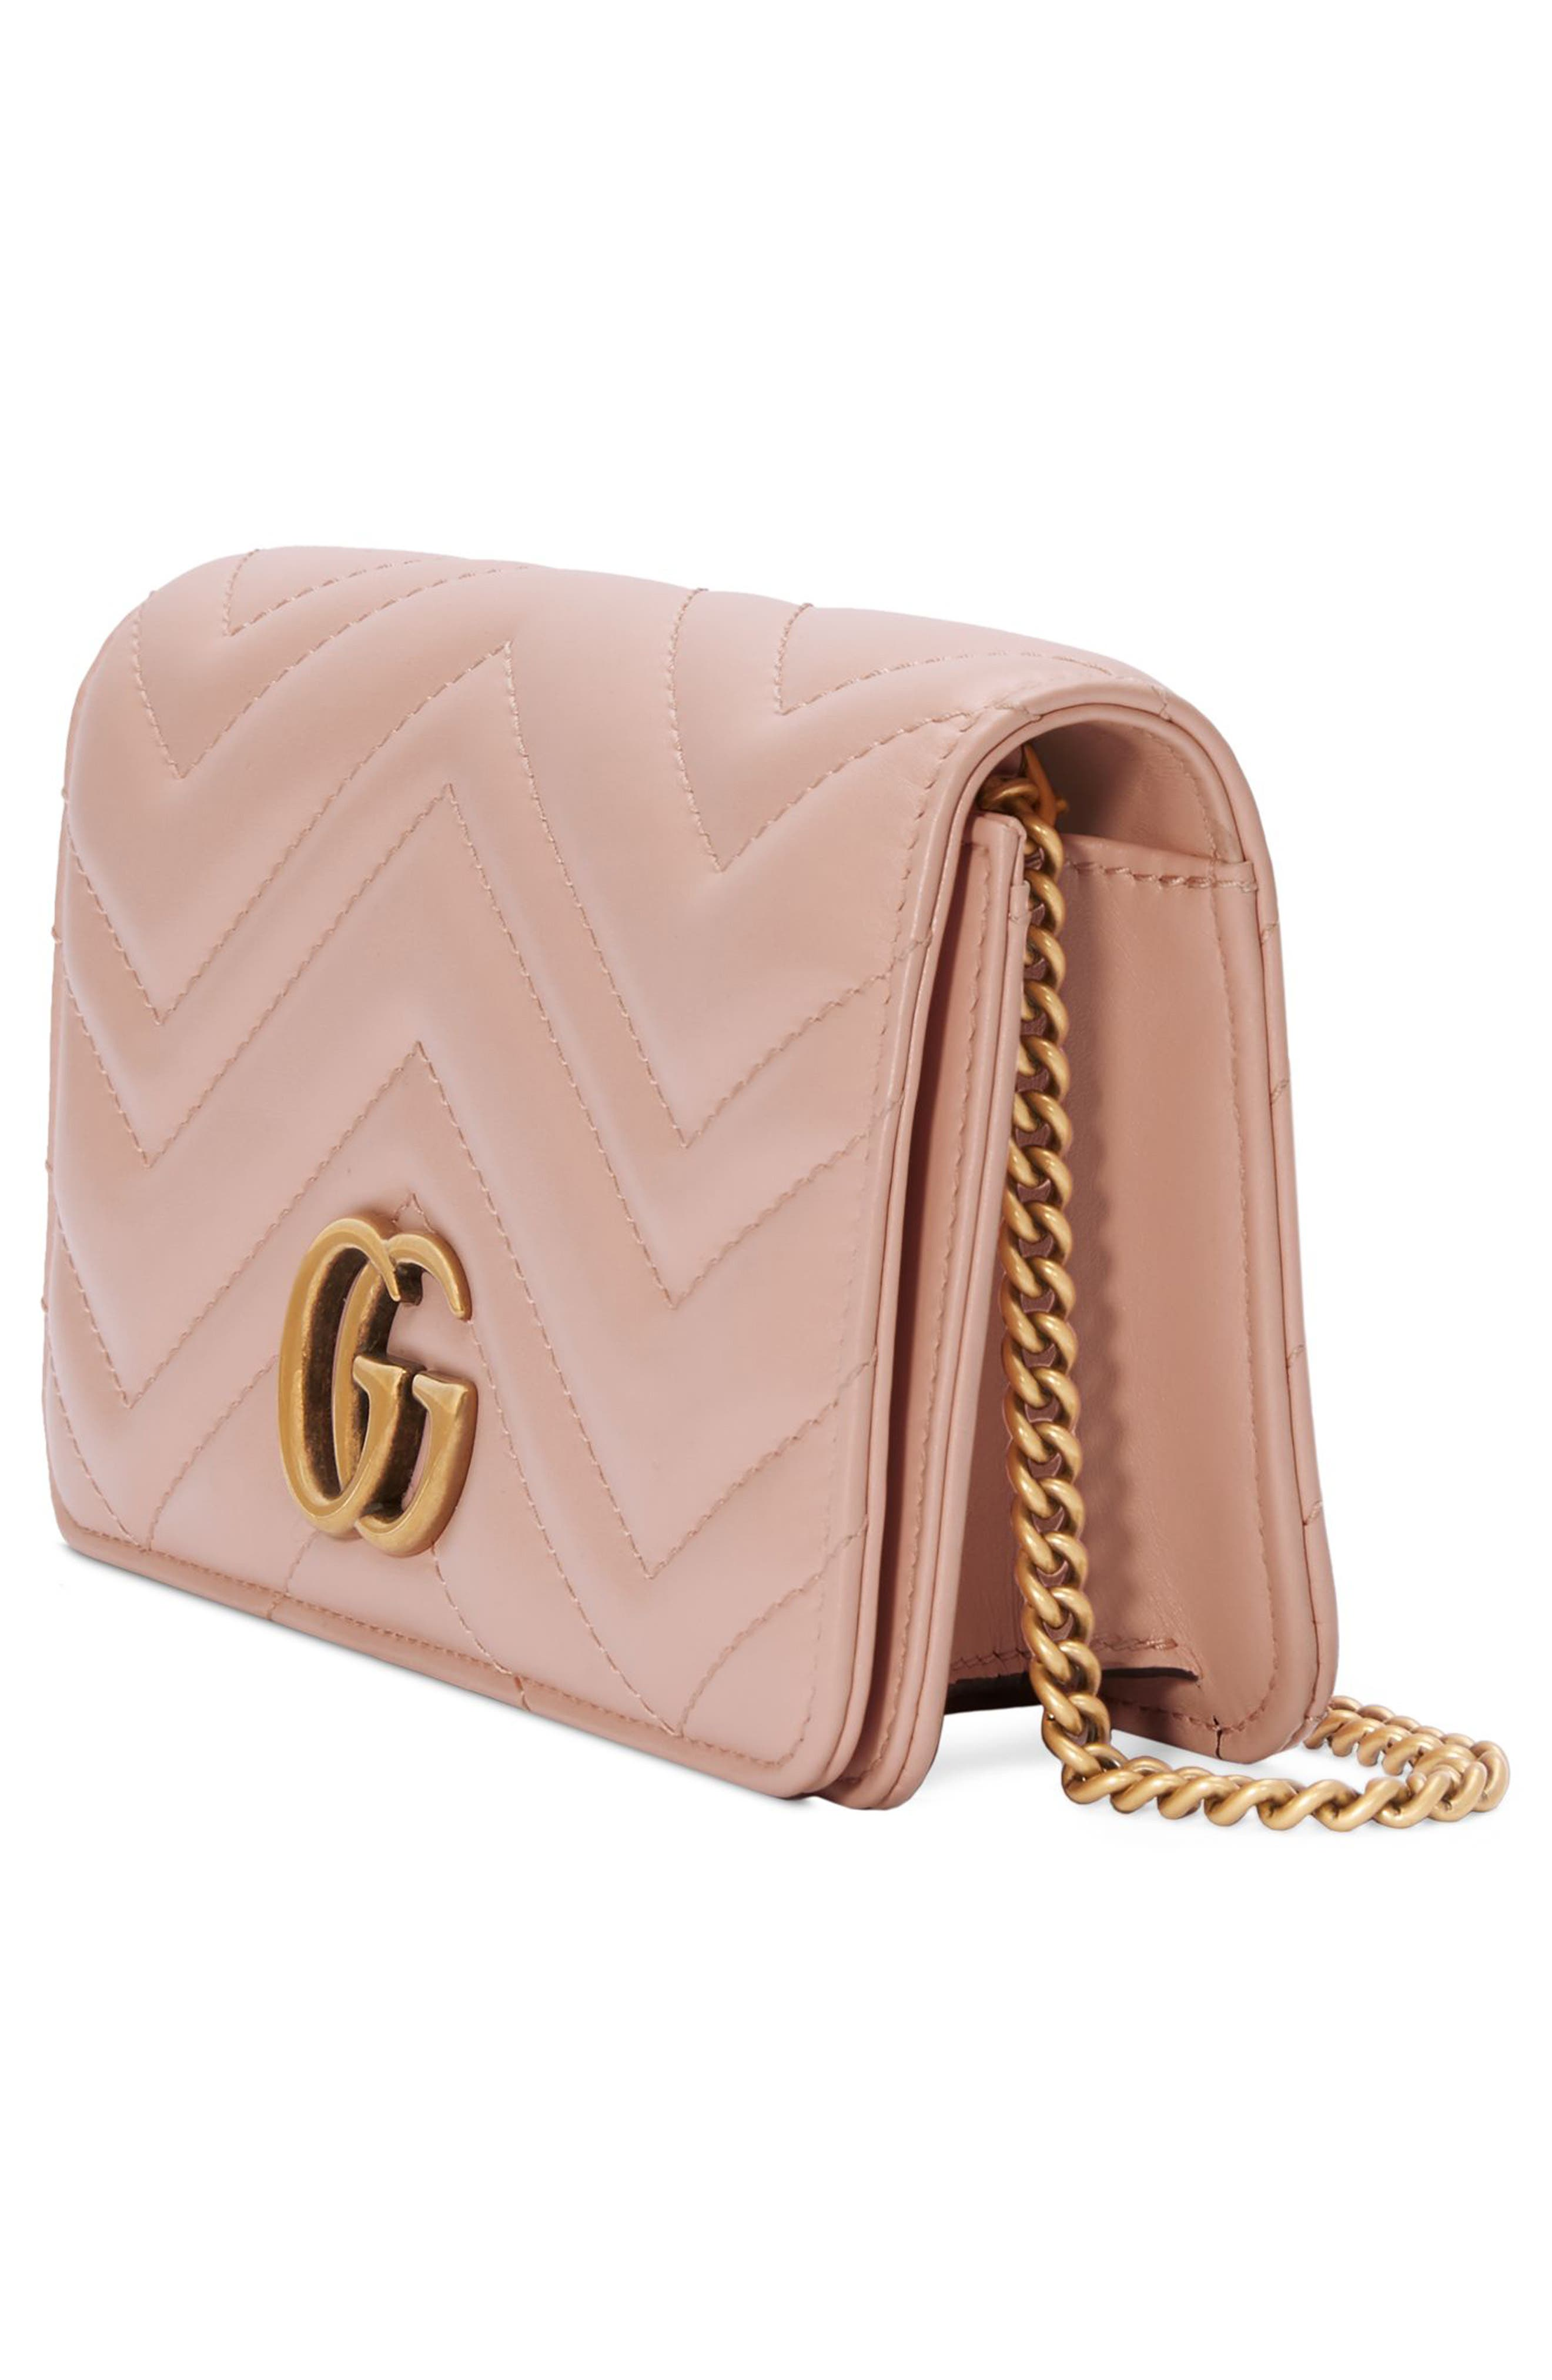 Marmont 2.0 Leather Shoulder Bag,                             Alternate thumbnail 4, color,                             PERFECT PINK